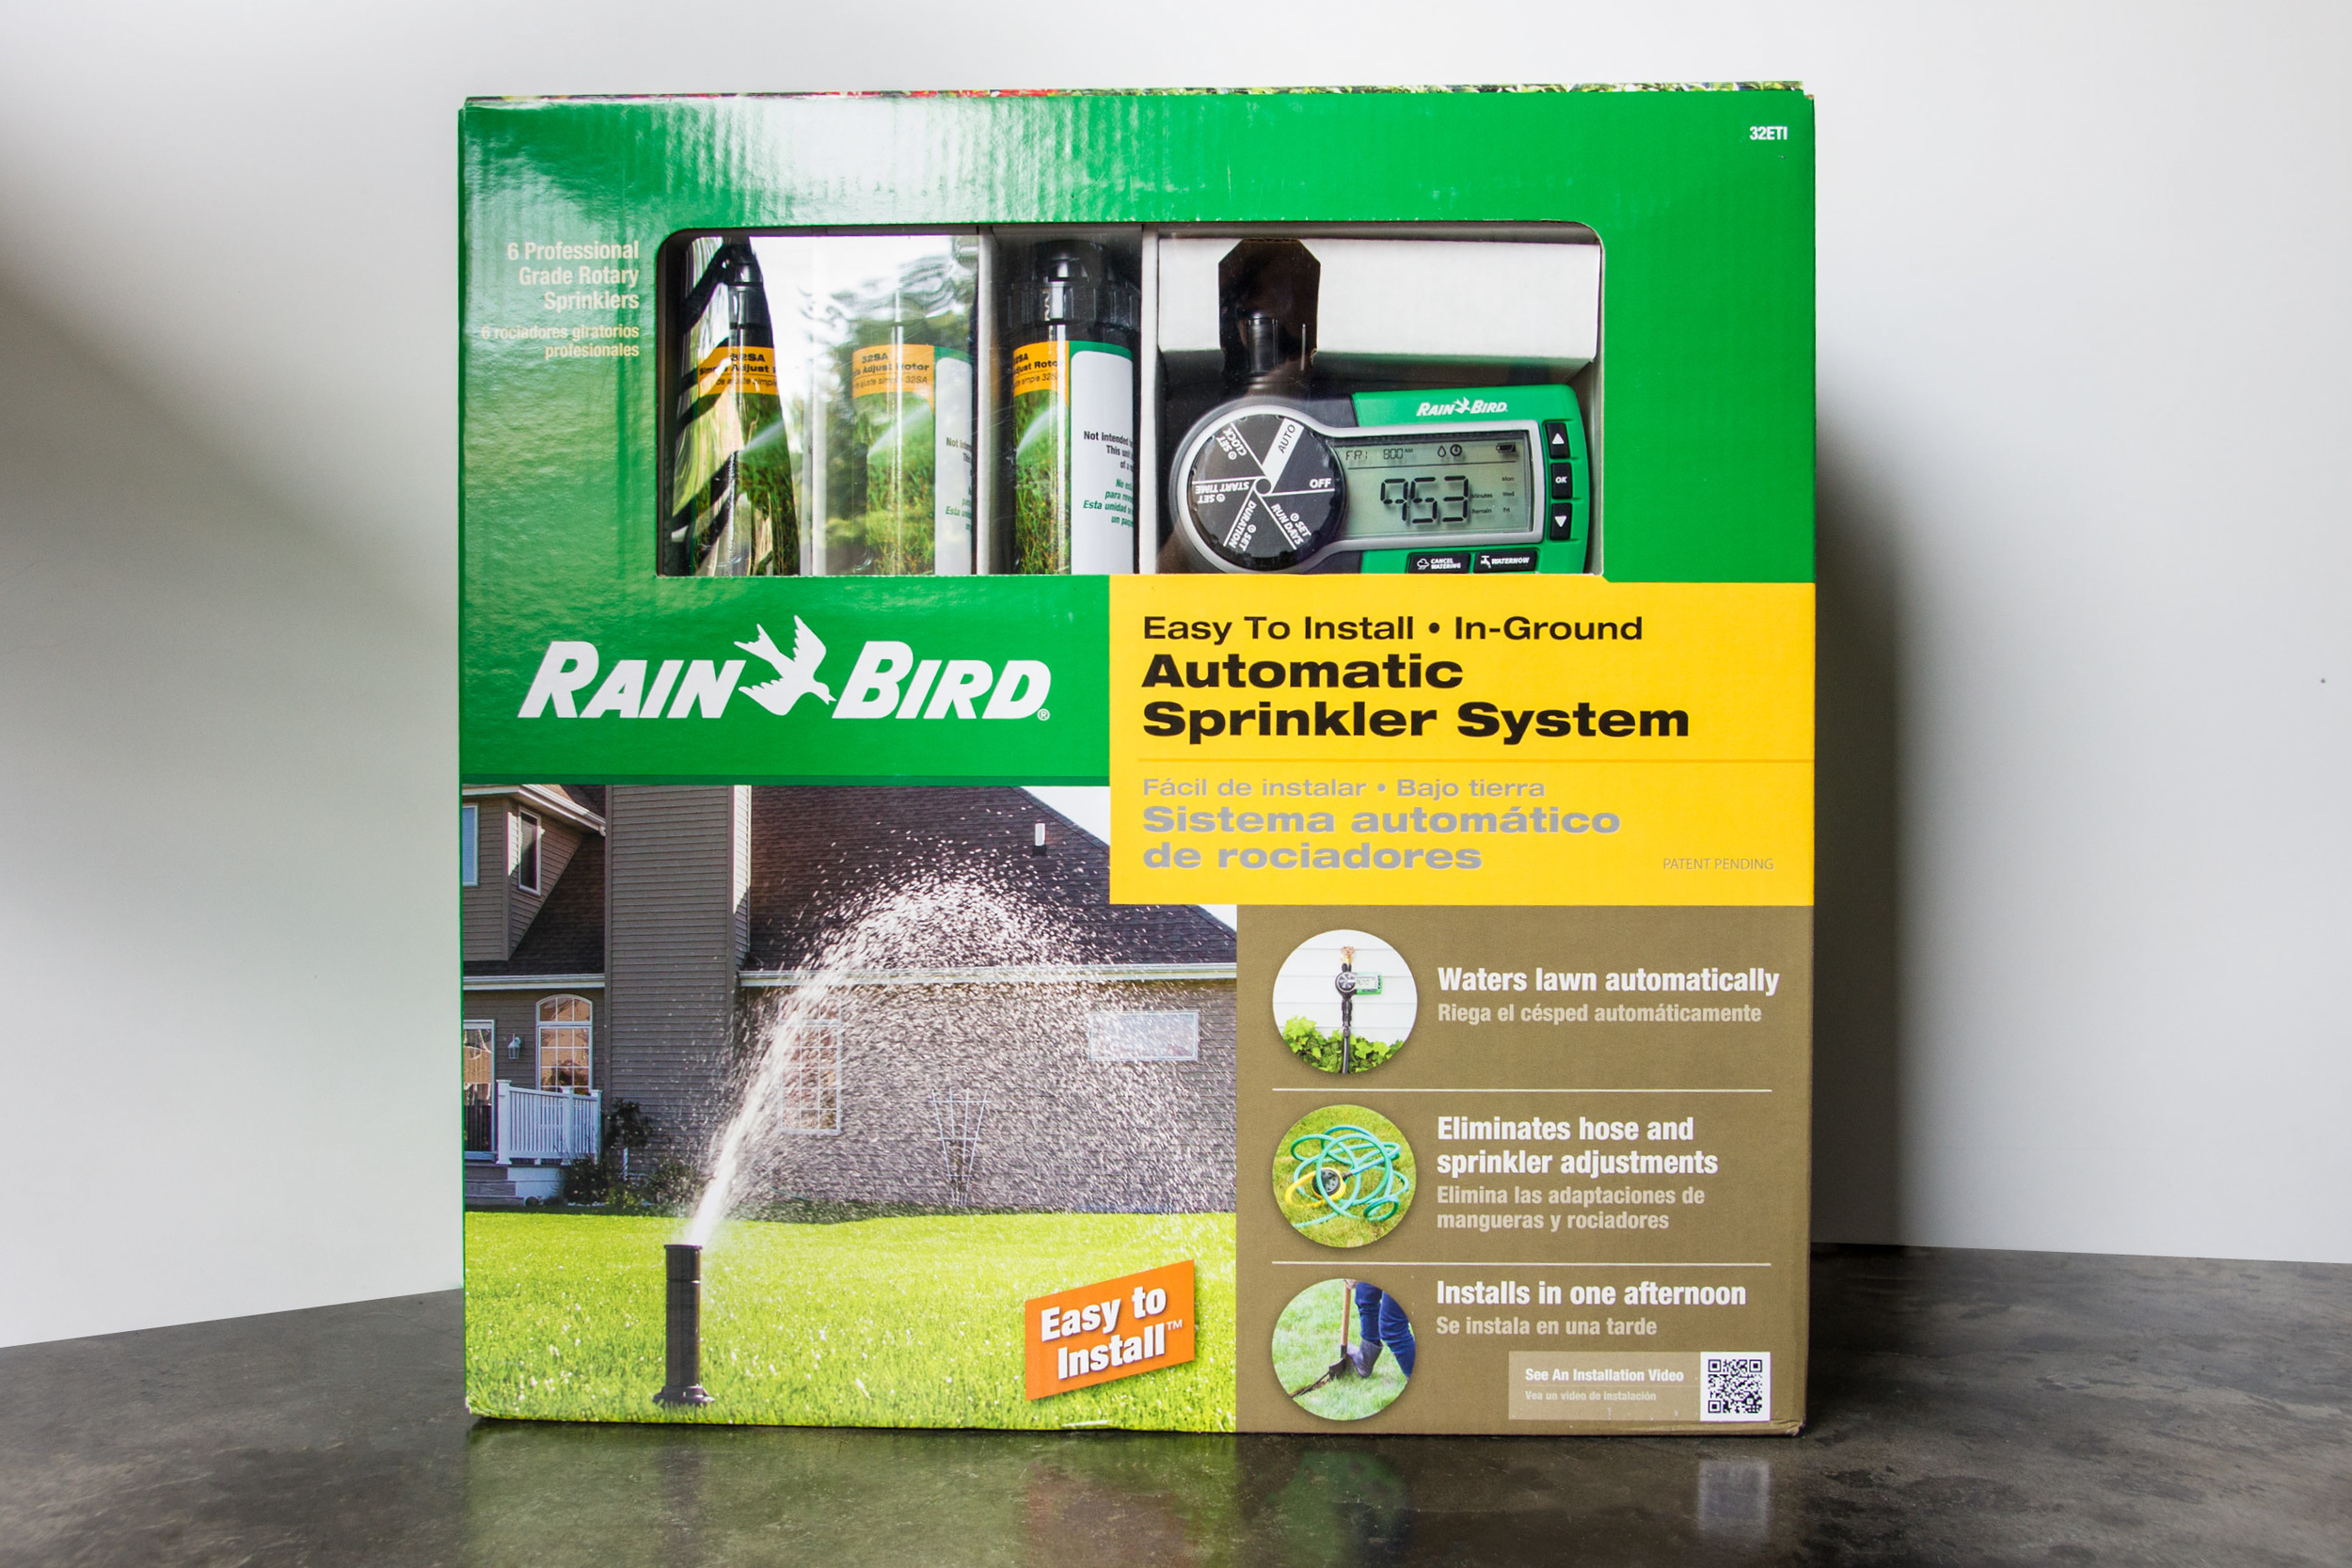 Rain Bird In-Ground Automatic Sprinkler System Easy to Install Attach to Faucet